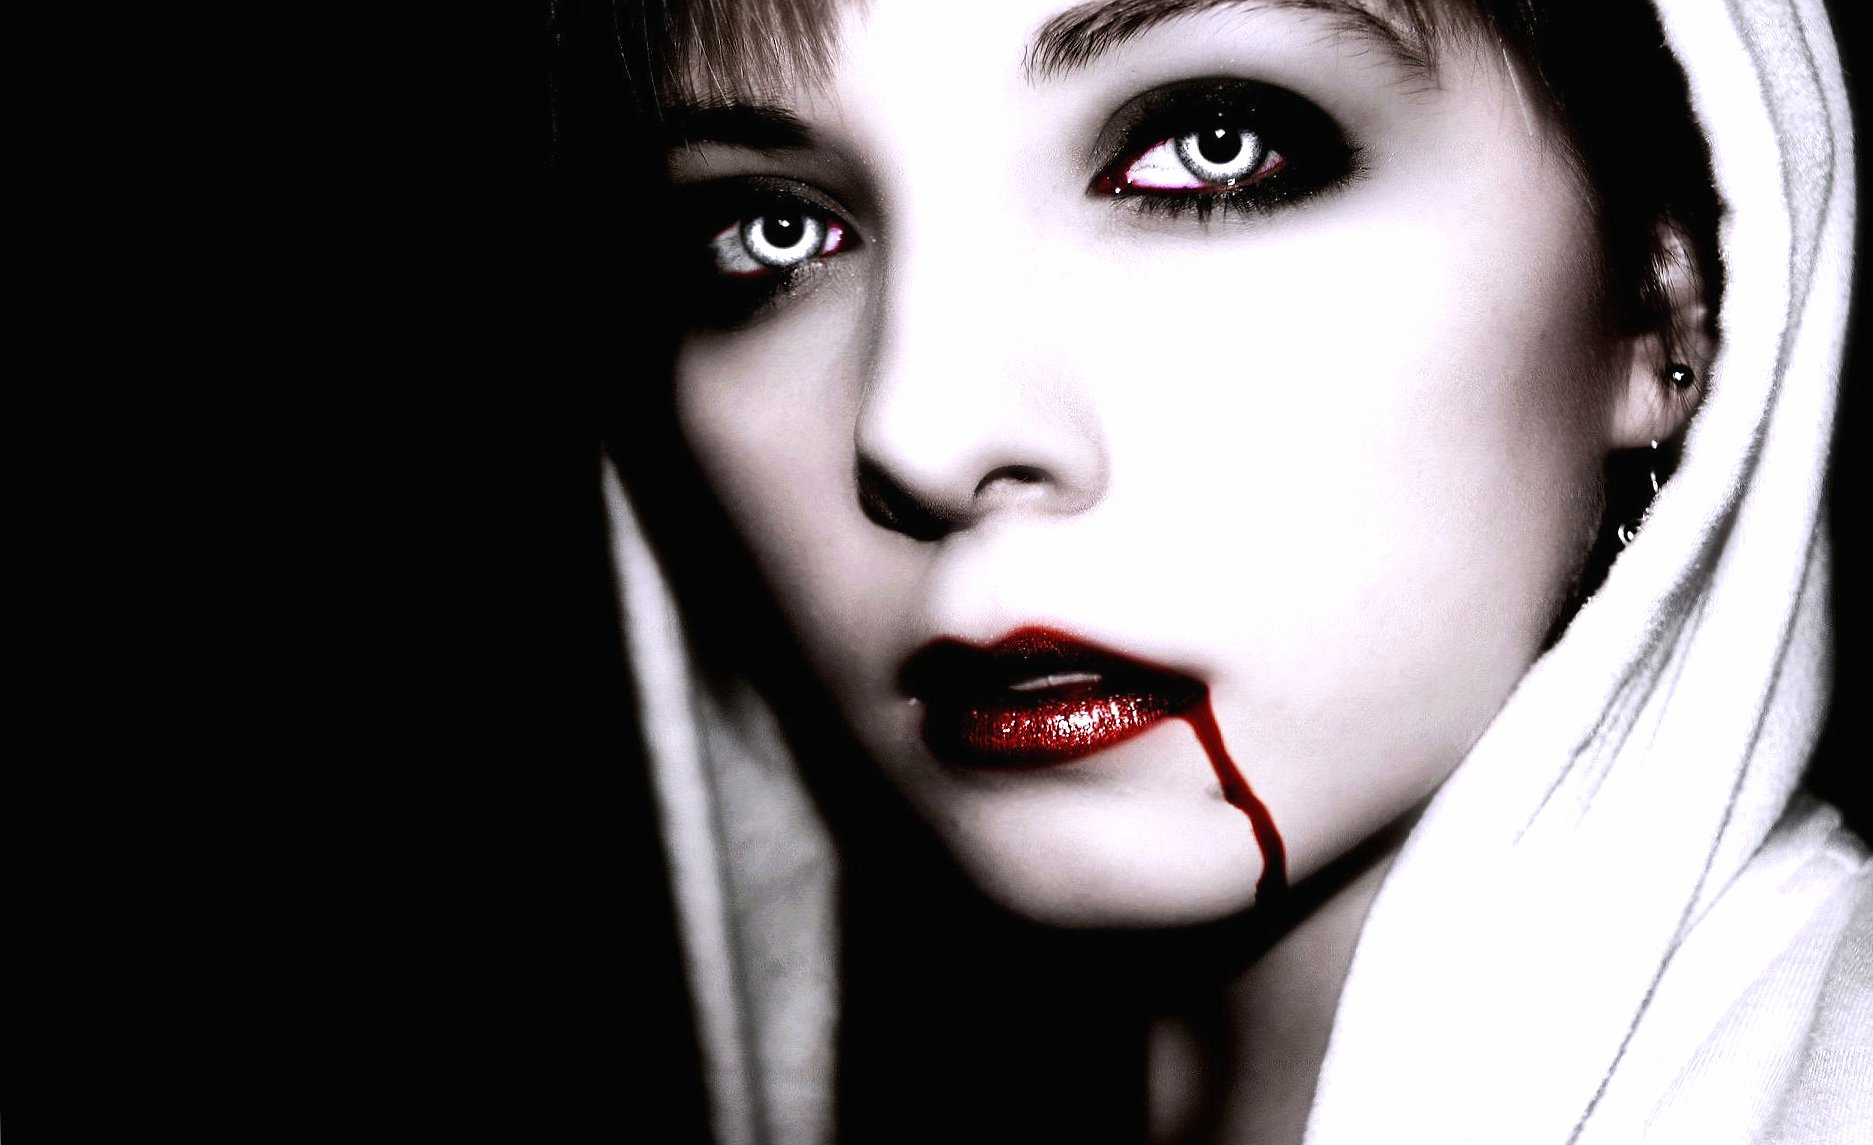 Amazing vampire woman at 2048 x 2048 iPad size wallpapers HD quality